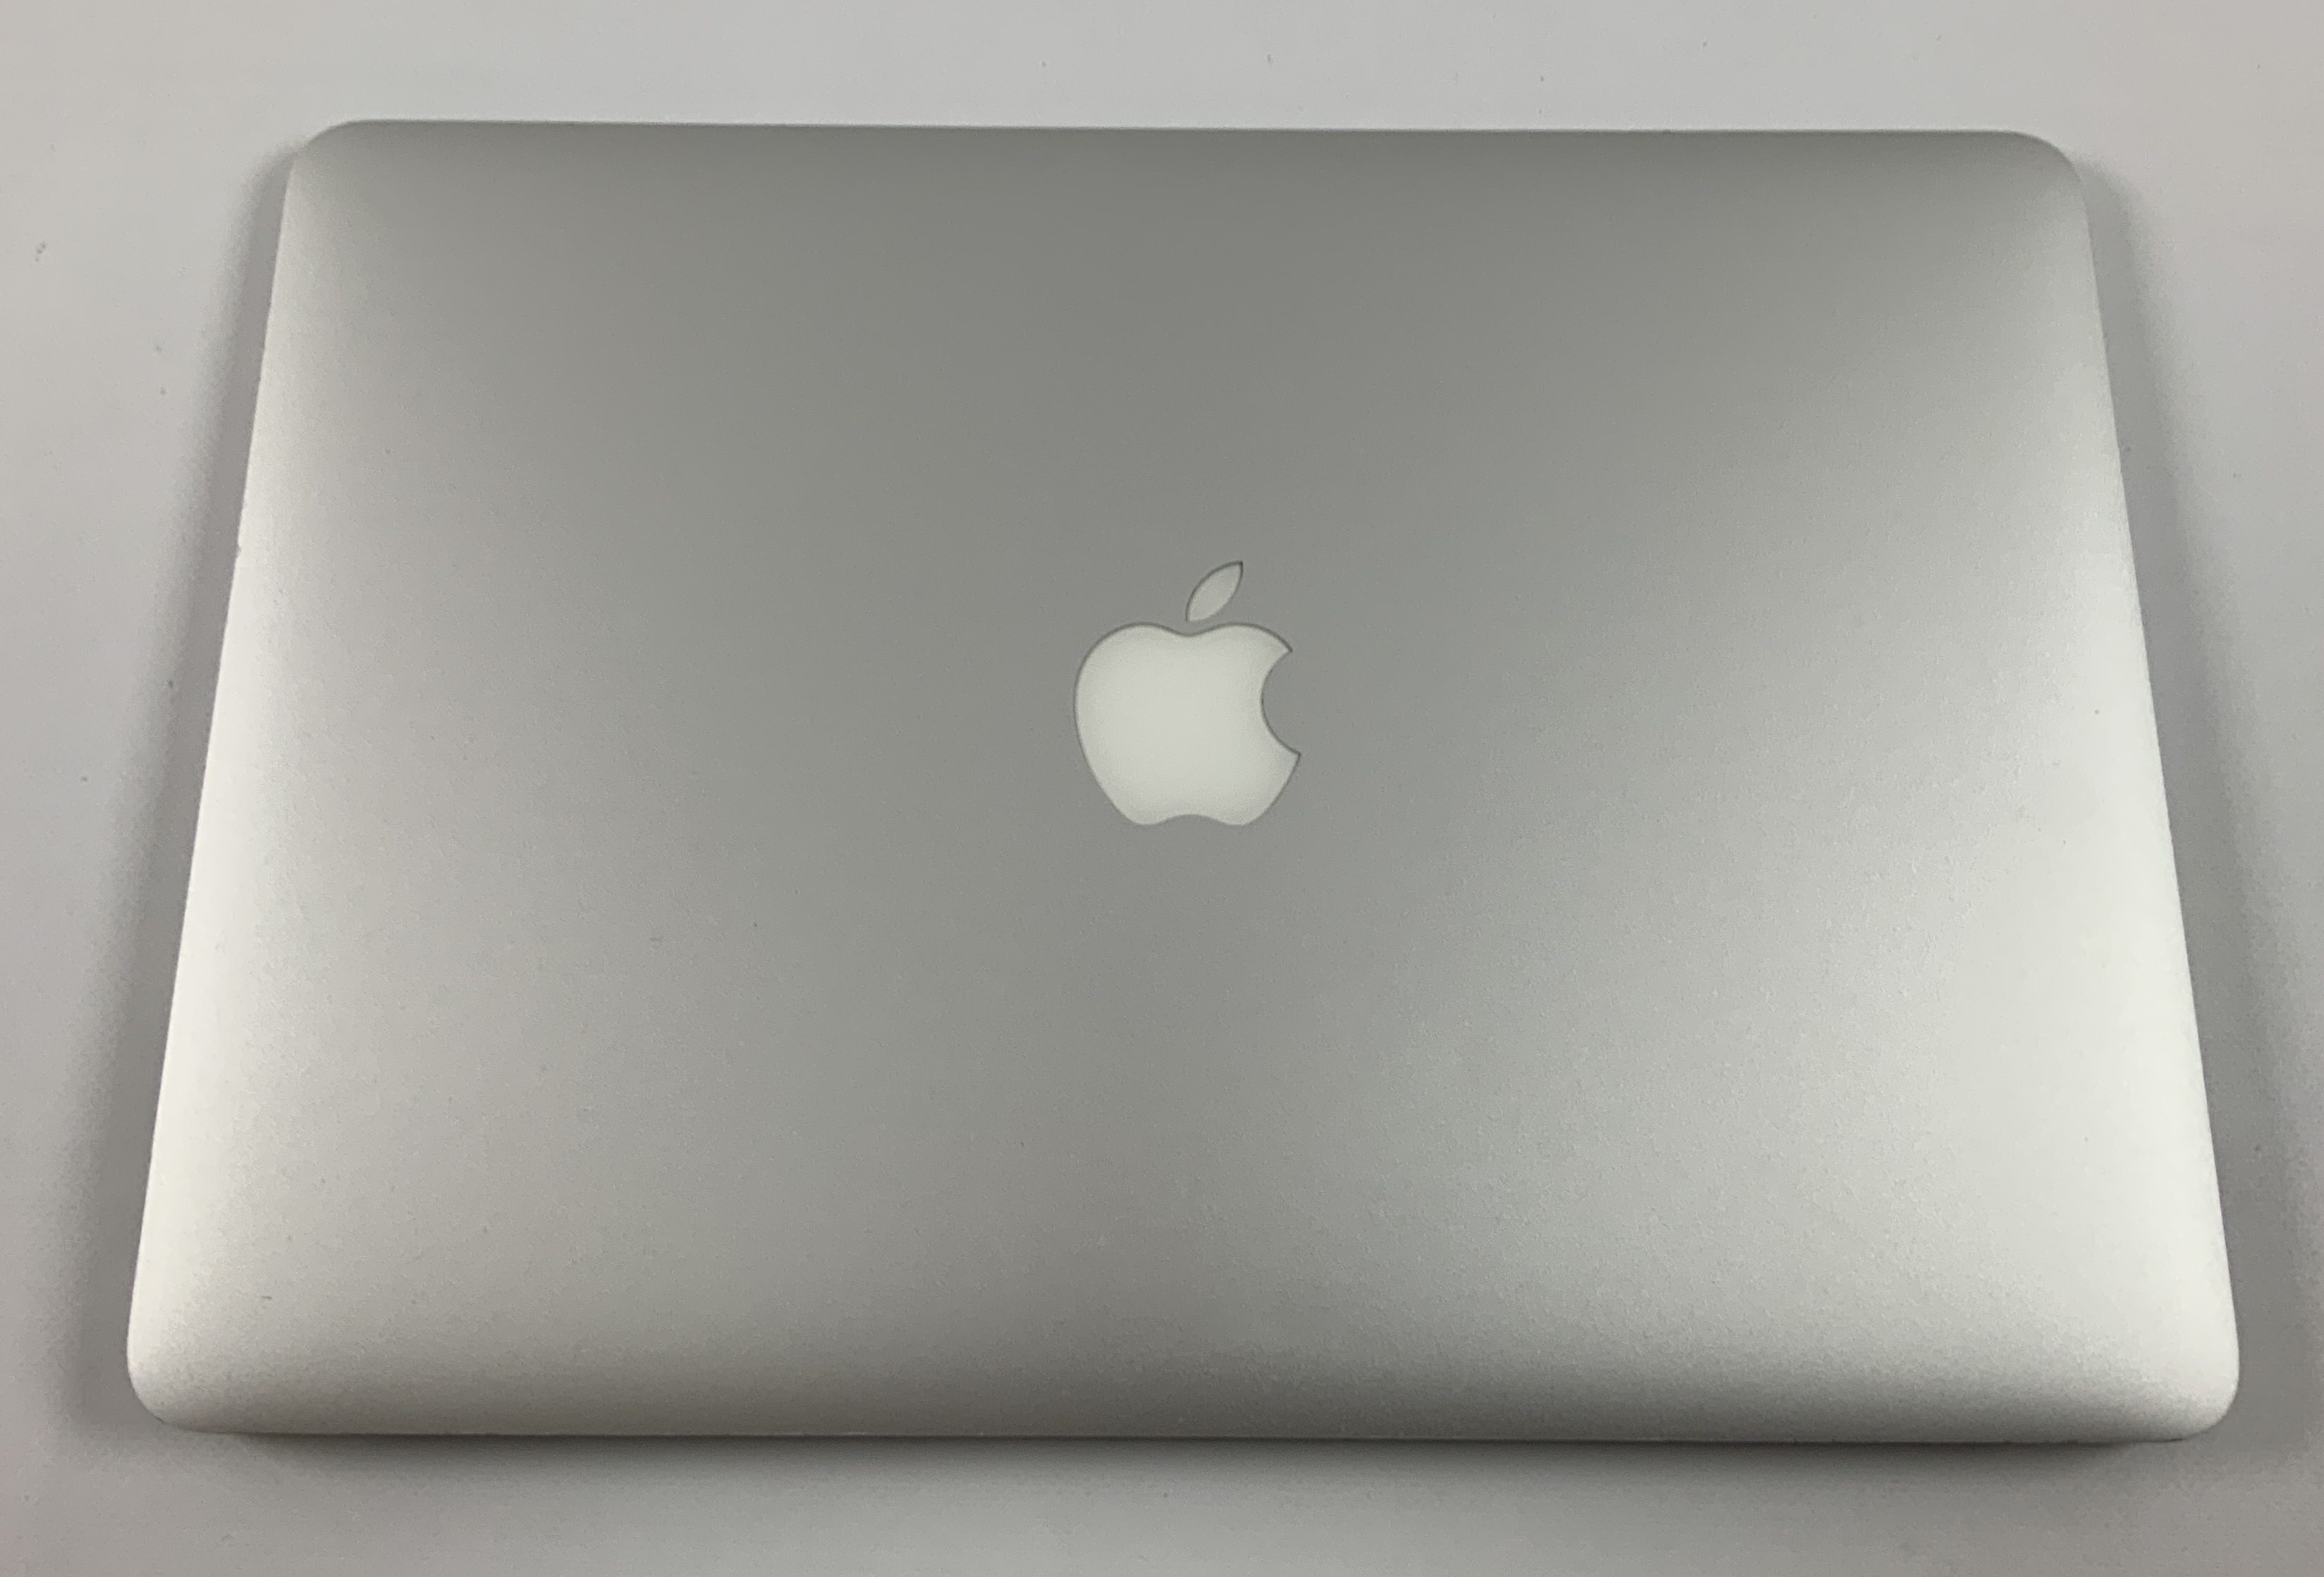 "MacBook Air 13"" Early 2014 (Intel Core i5 1.4 GHz 4 GB RAM 256 GB SSD), Intel Core i5 1.4 GHz, 4 GB RAM, 256 GB SSD, image 2"